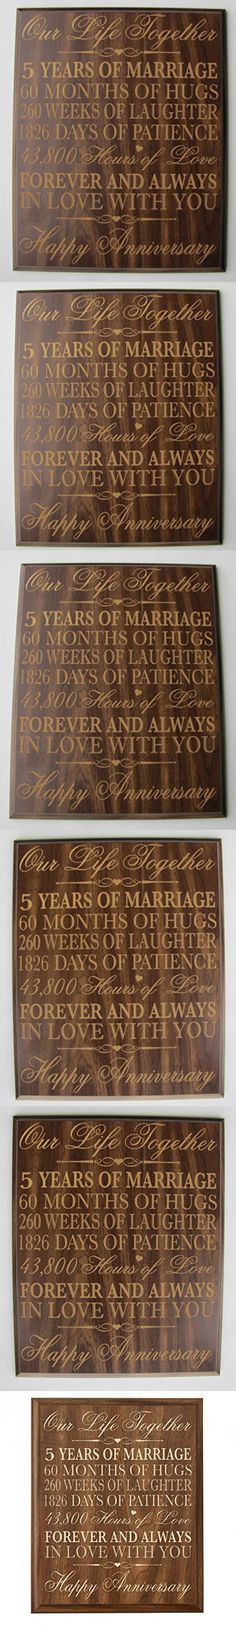 "5th Wedding Anniversary Wall Plaque Gifts for Couple, 5th Anniversary Gifts for Her,5th Wedding Anniversary Gifts for Him 12 W X 15"" H Wall Plaque By Dayspring Milestones Walnut"